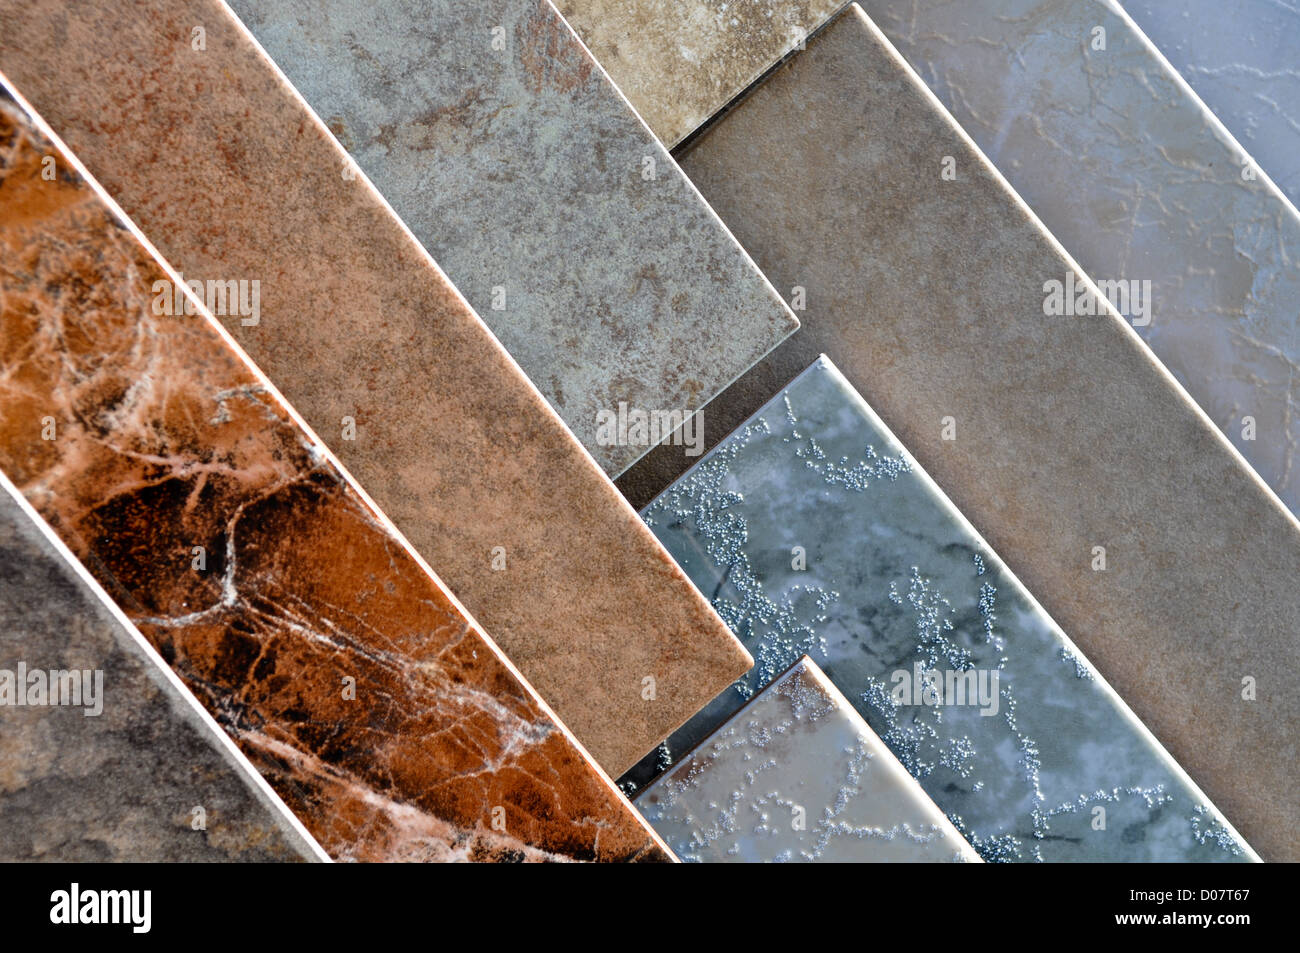 Ceramic tile display samples store stock photo royalty free image ceramic tile display samples store dailygadgetfo Image collections